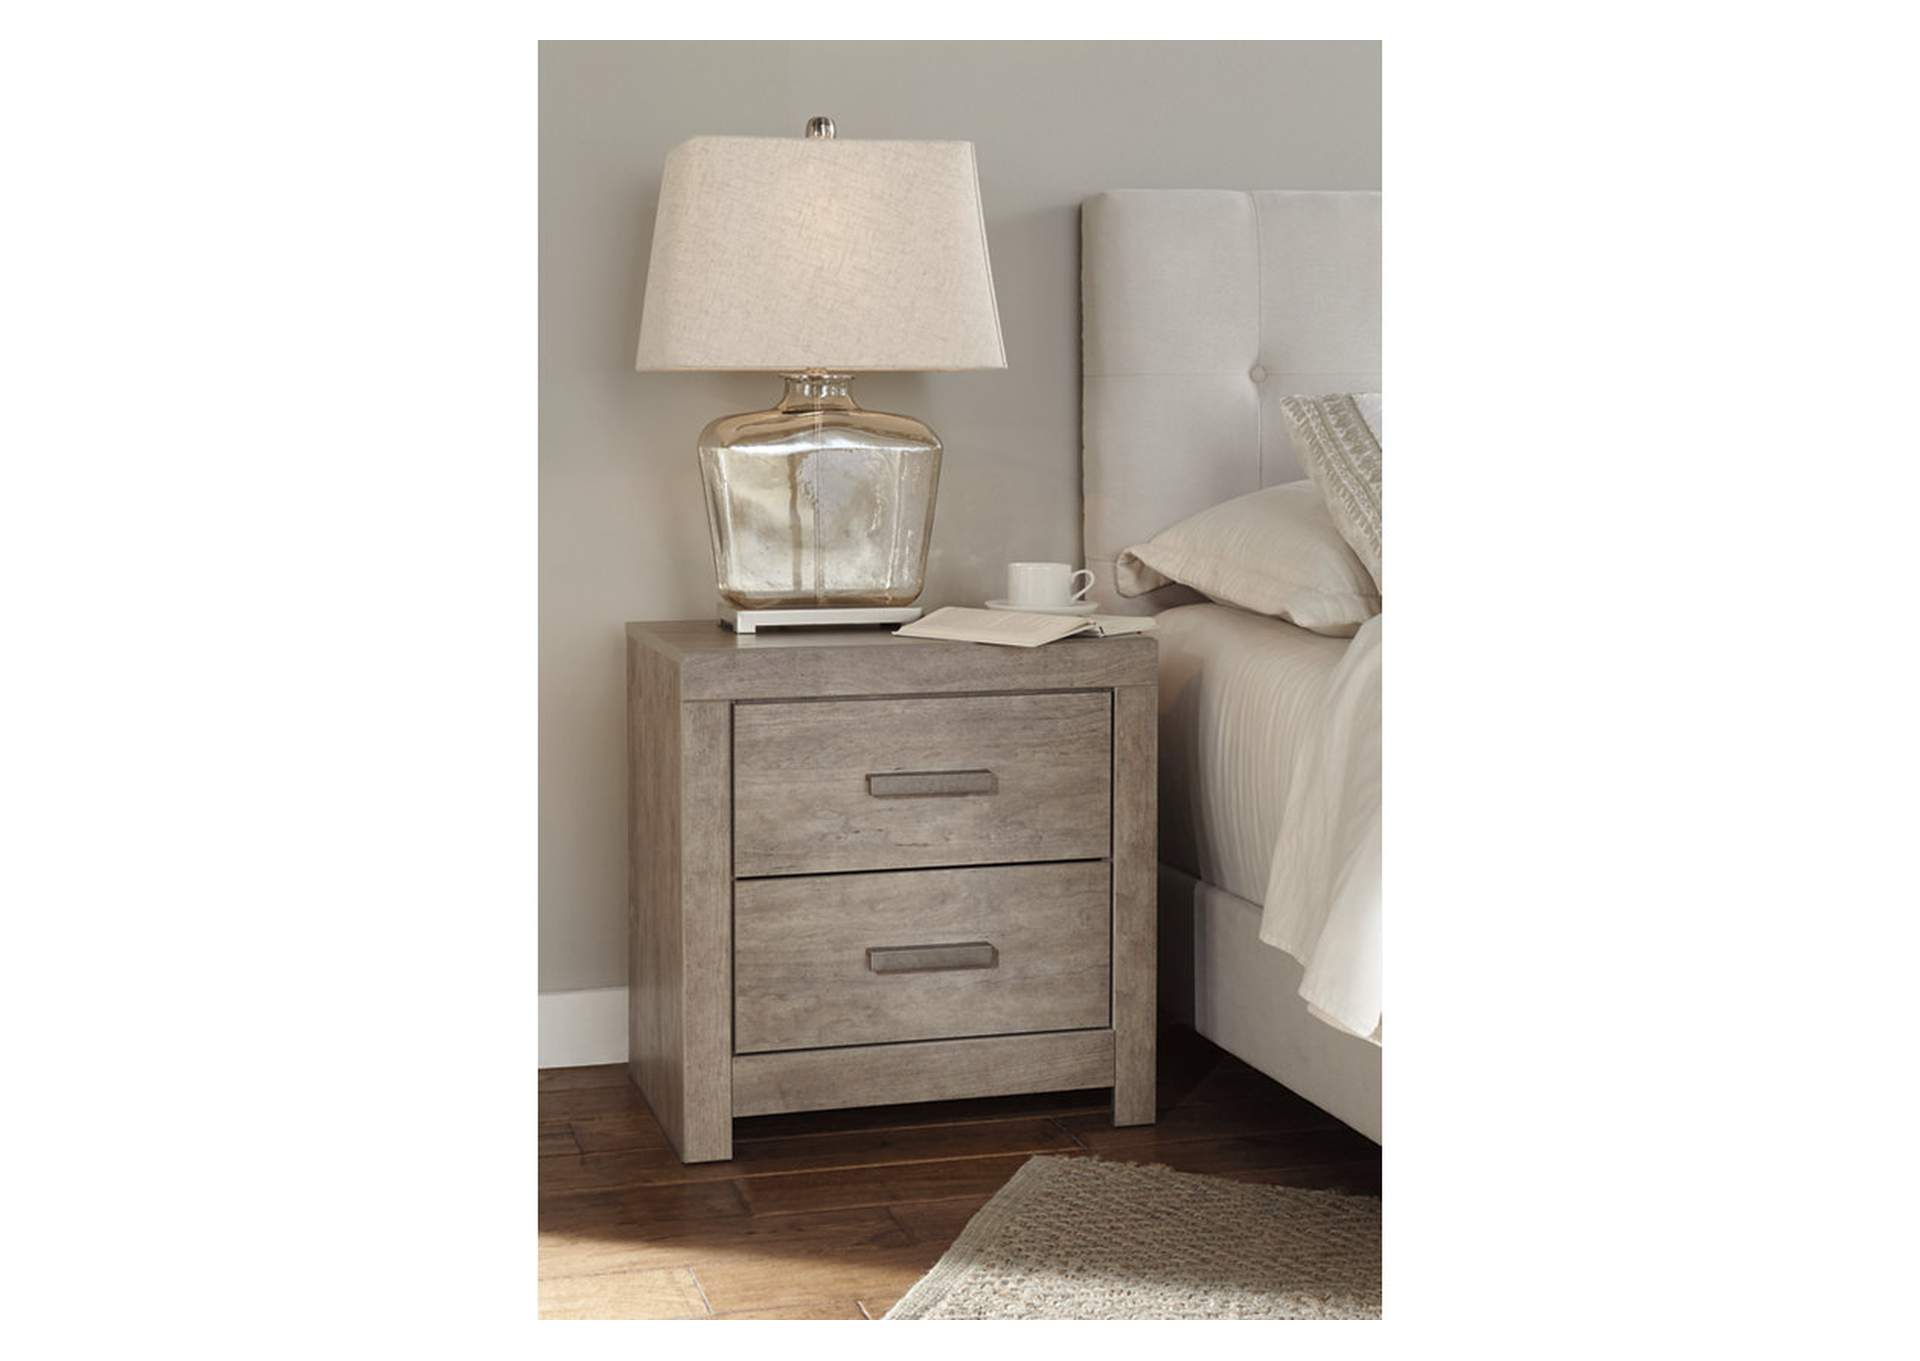 Culverbach Gray Two Drawer Nightstand,Signature Design By Ashley